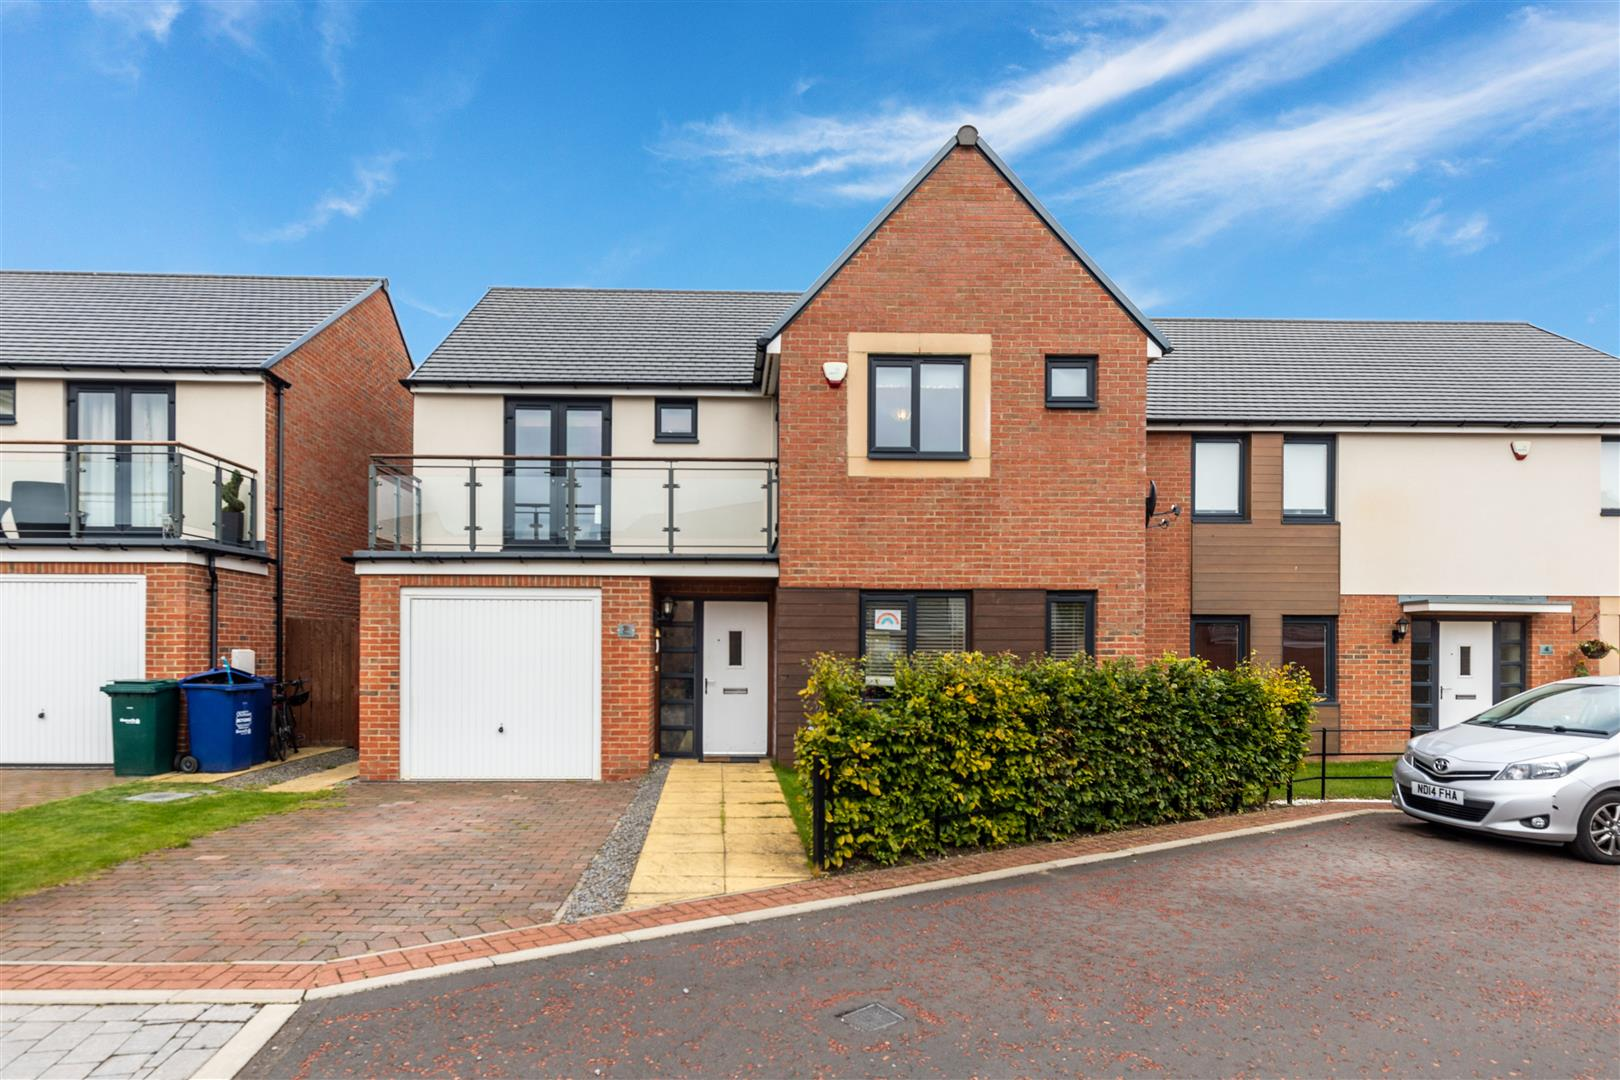 4 bed detached house for sale in Newcastle Upon Tyne, NE13 9AU, NE13